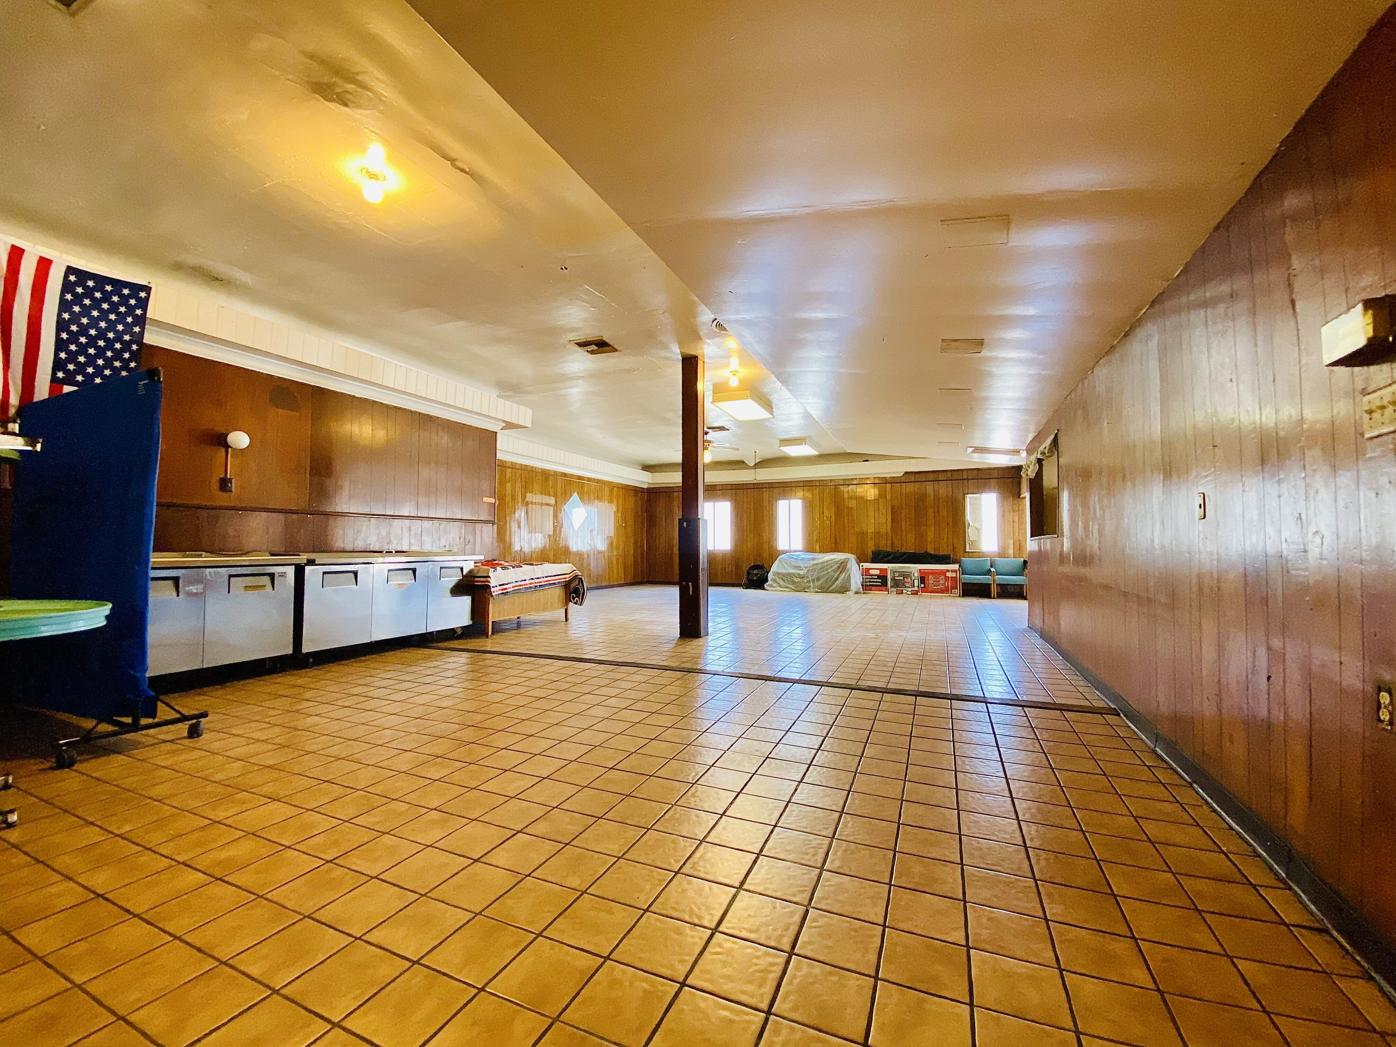 FOR LEASE: Colorado Blvd Retail, Creative Office or Restaurant Space image 2